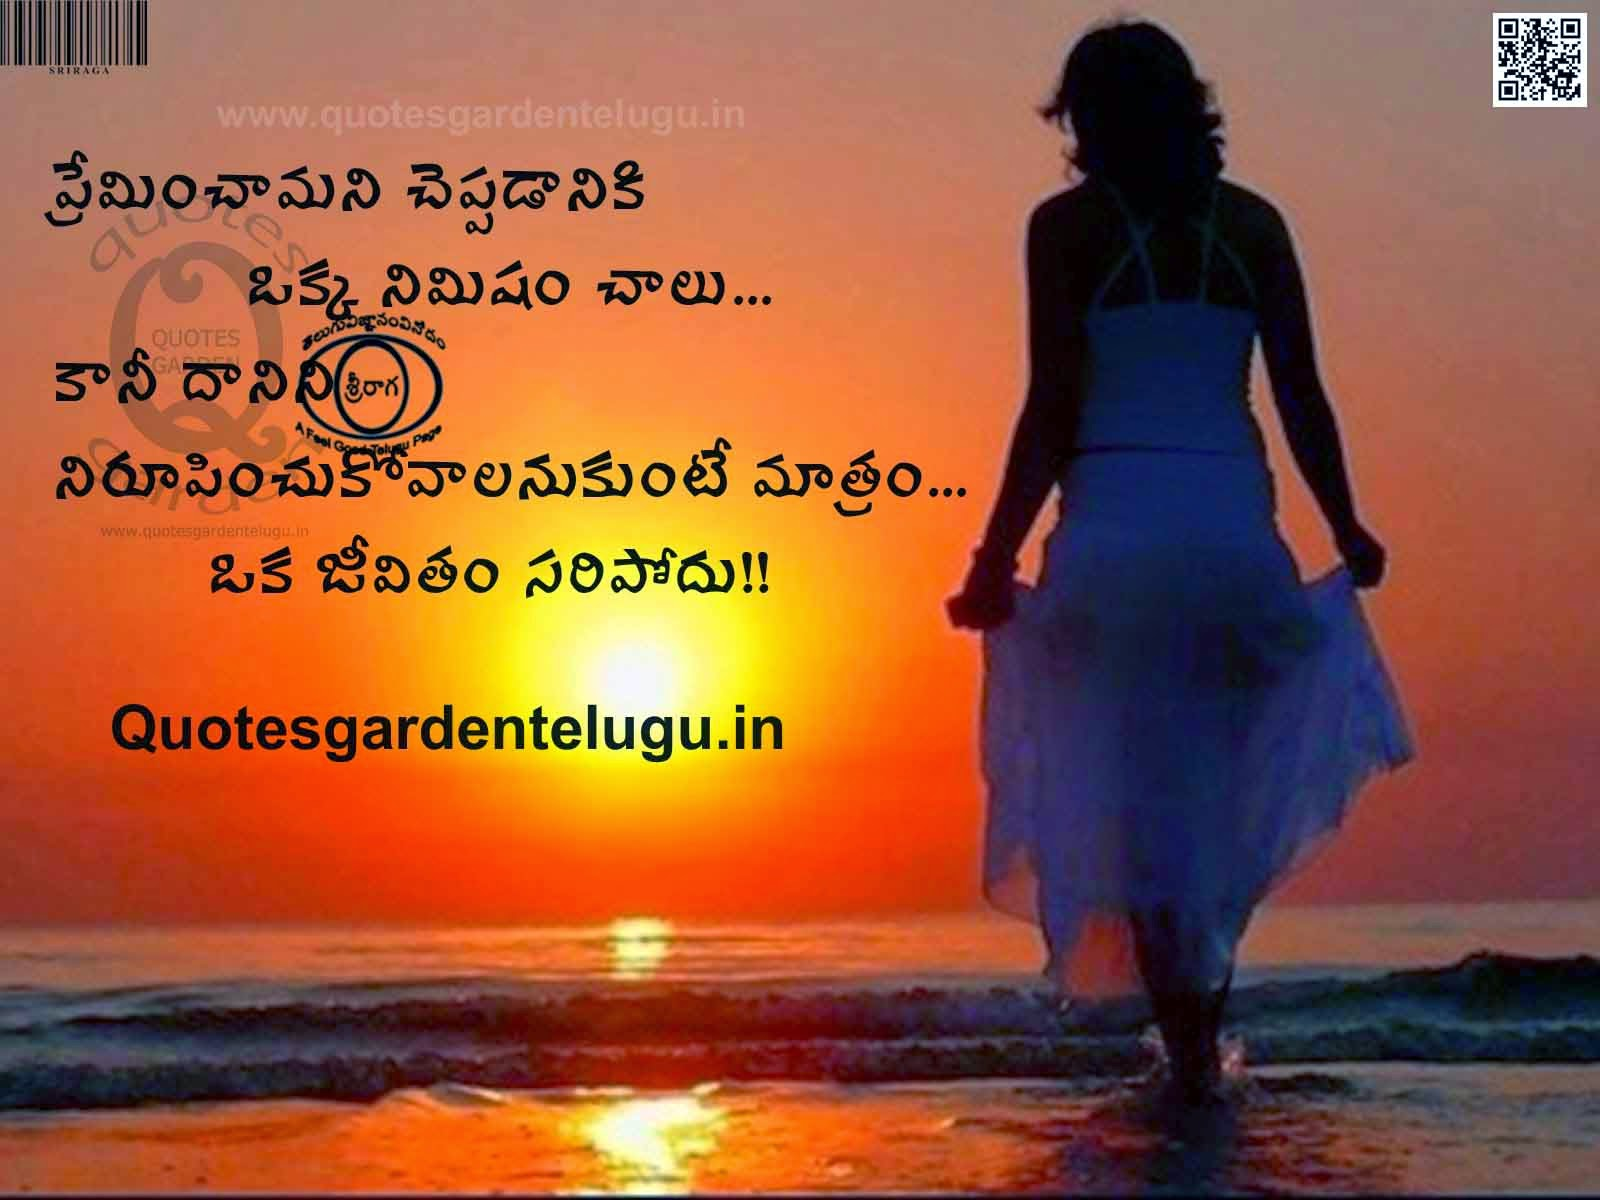 Best Telugu Love Quotes Inspirational Quotes with Images HDwallpapers